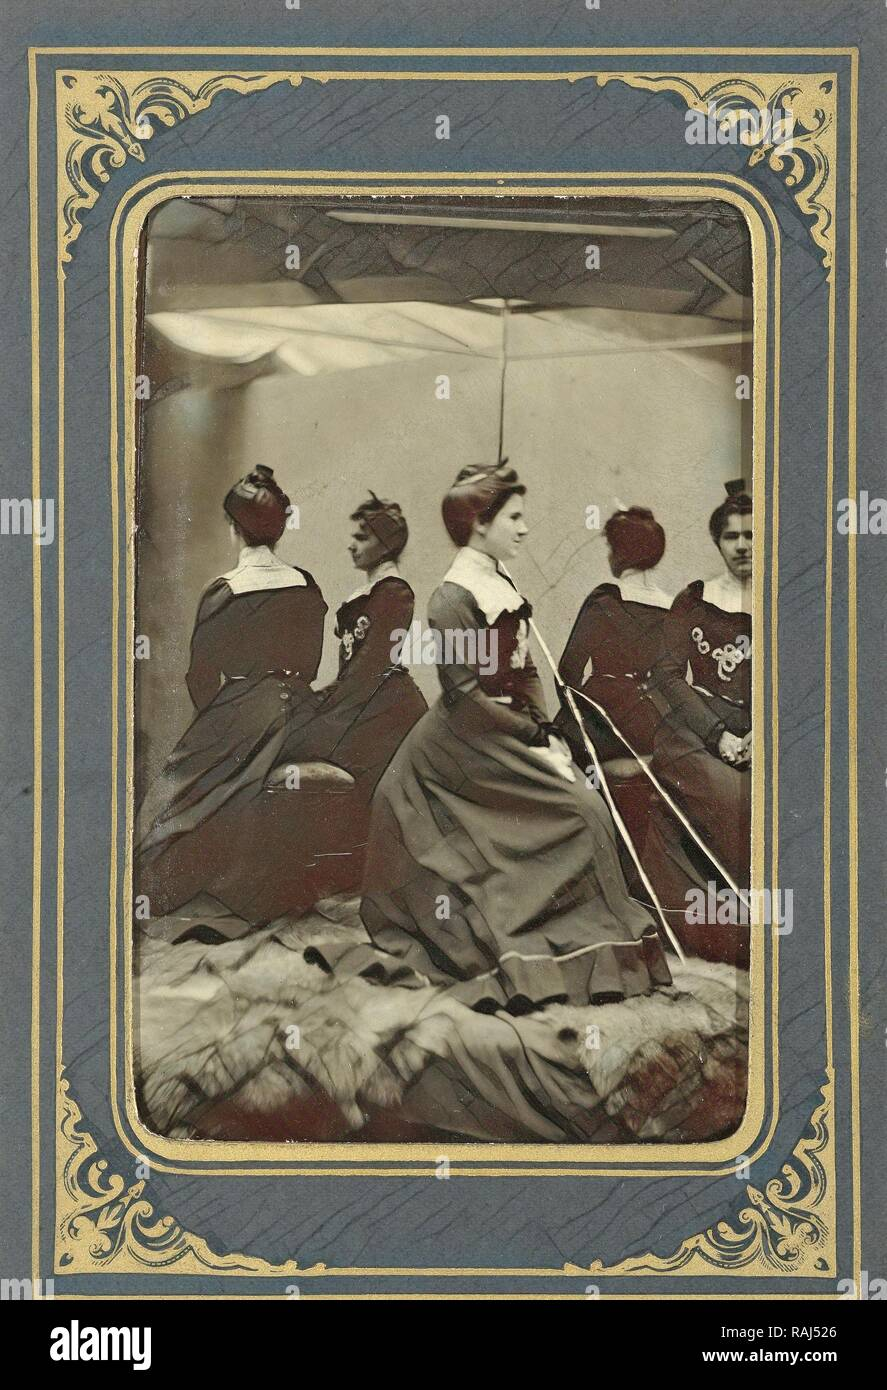 Portrait of Grace DeWitt, posing in front of a mirror, A. Lincoln Myers, Dating 1899. Reimagined by Gibon. Classic reimagined - Stock Image